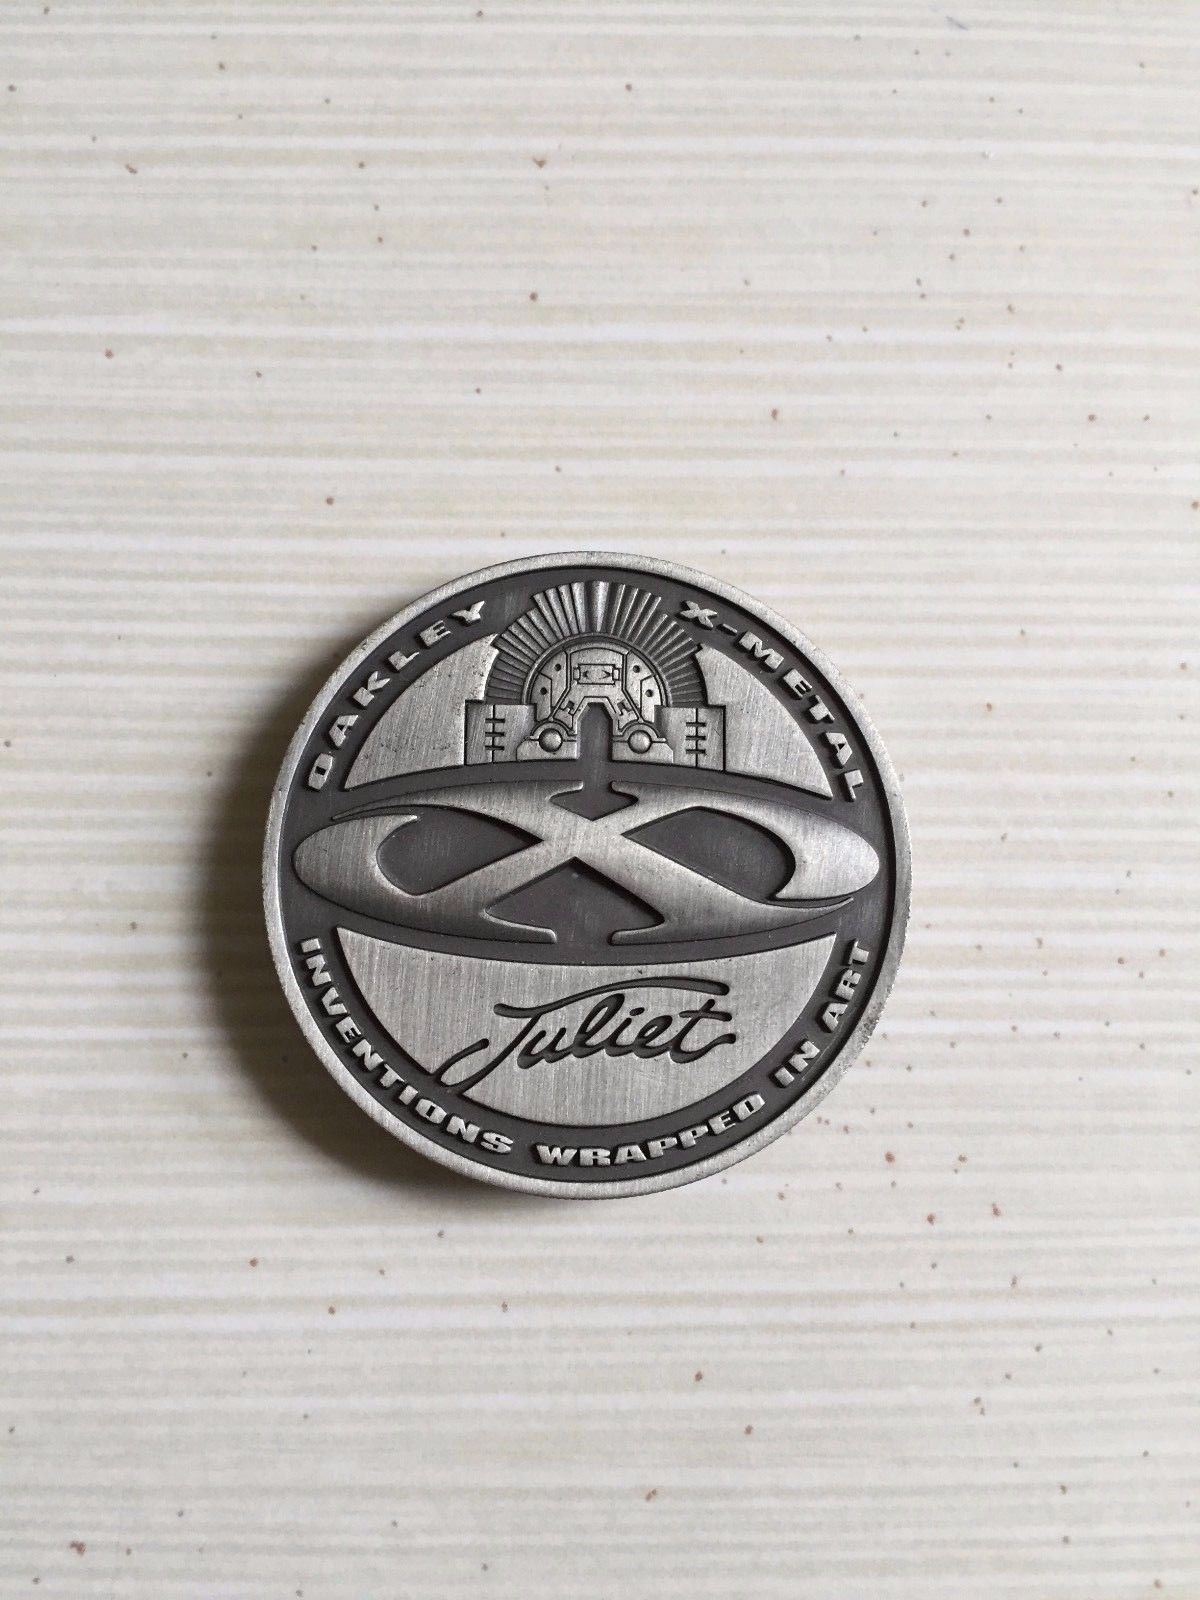 Juliet X Metal Collector's Coin - Great Condition! - s-l1600-7.jpg